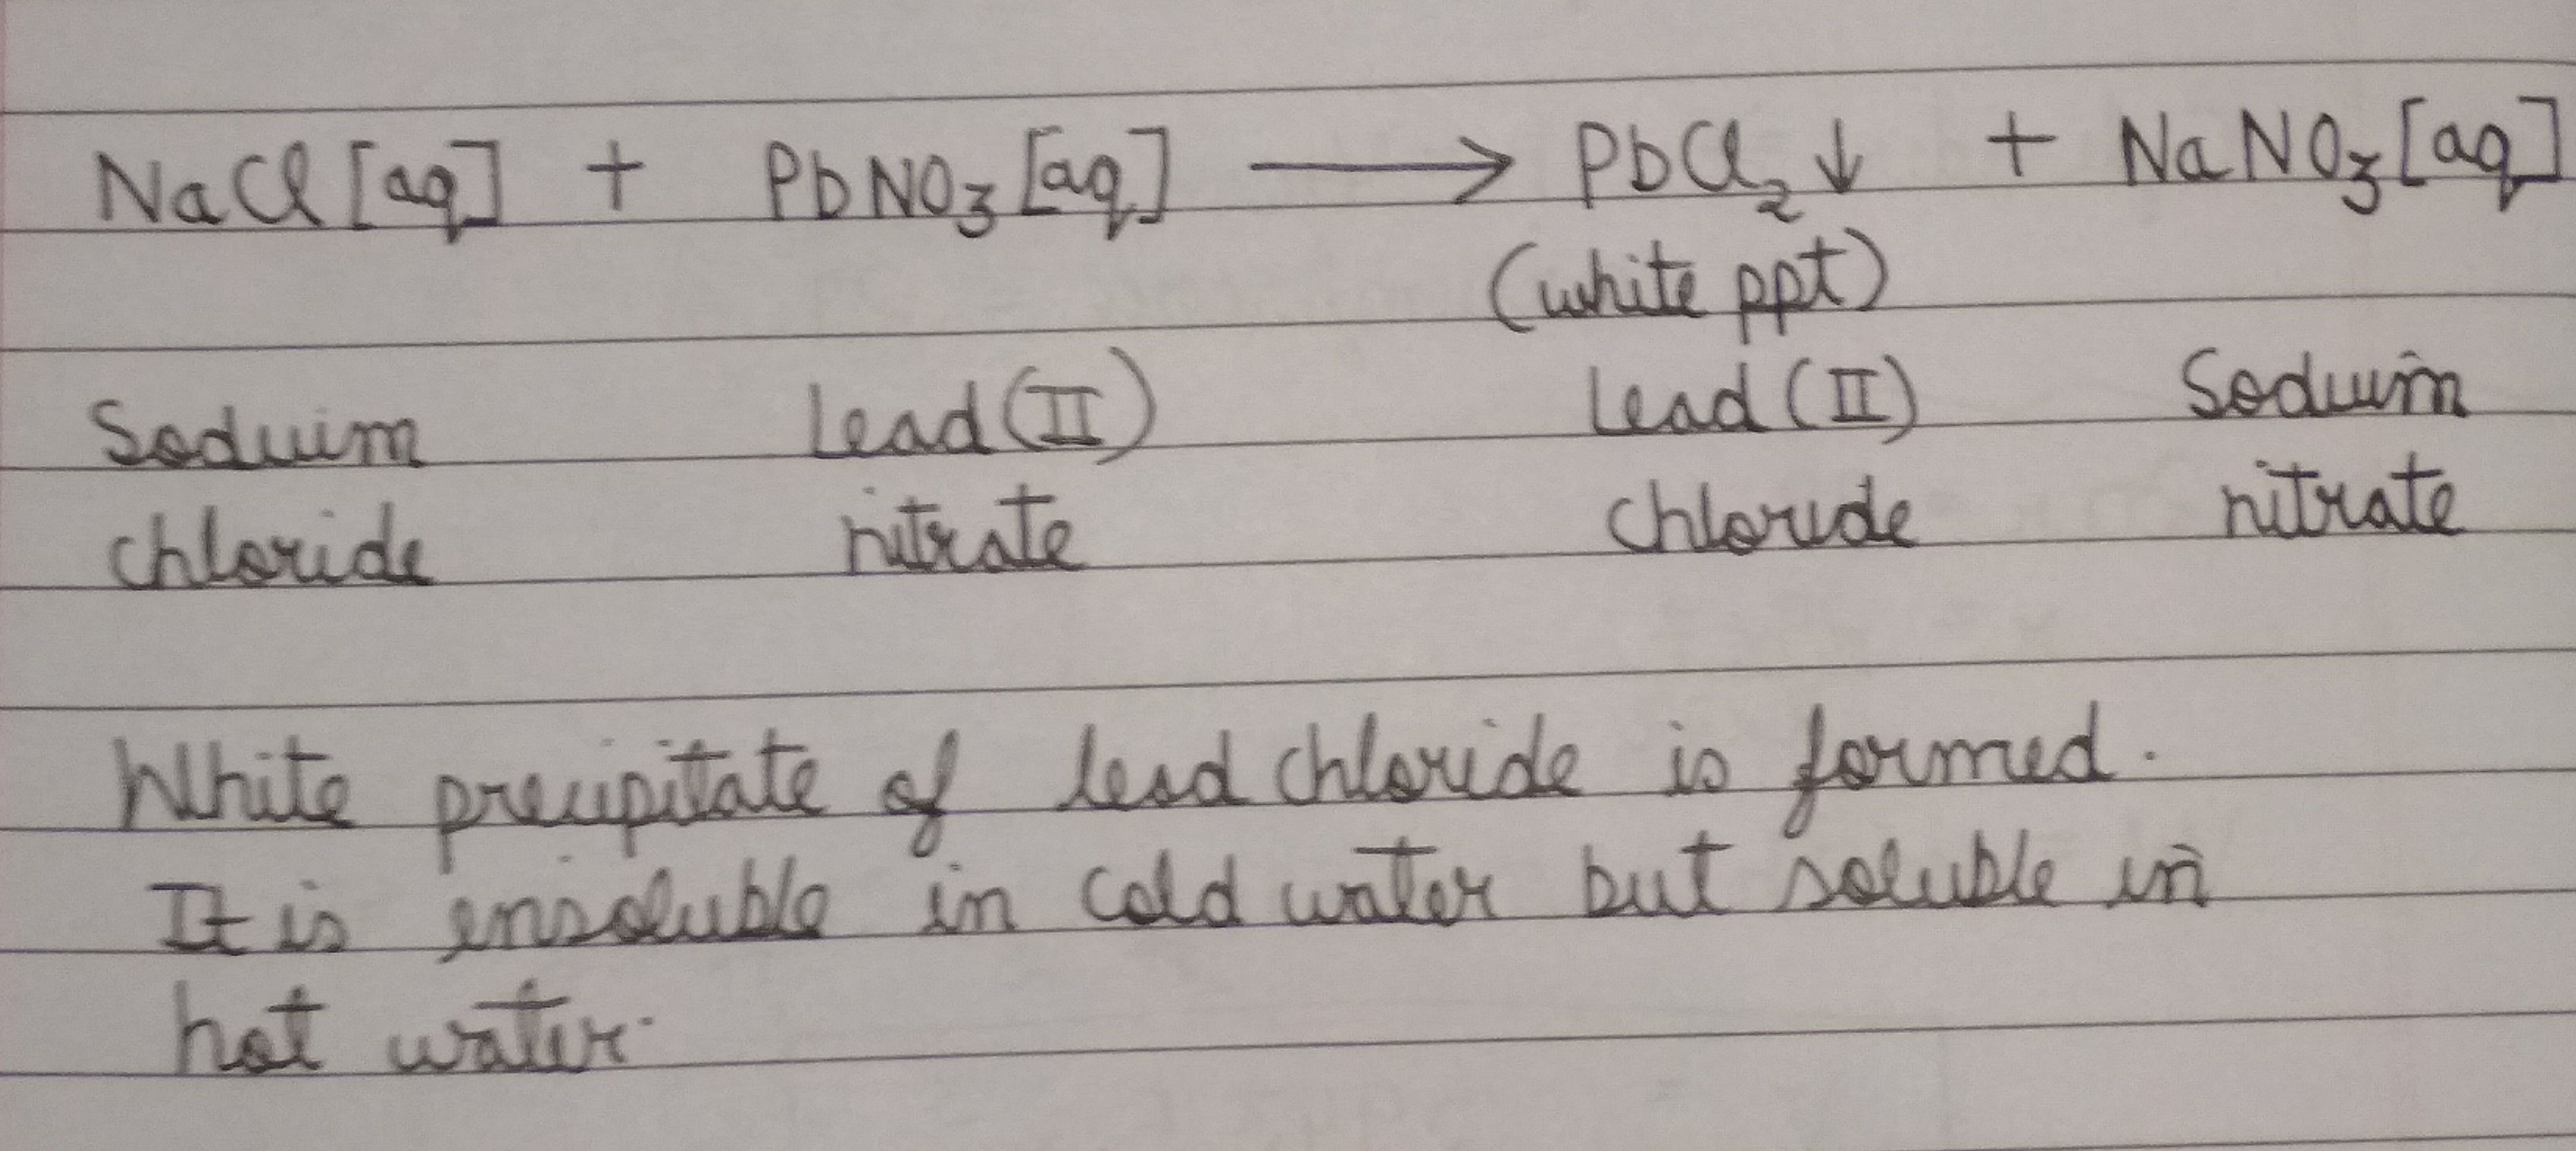 Chemical Equation For Water And Sodium Chloride